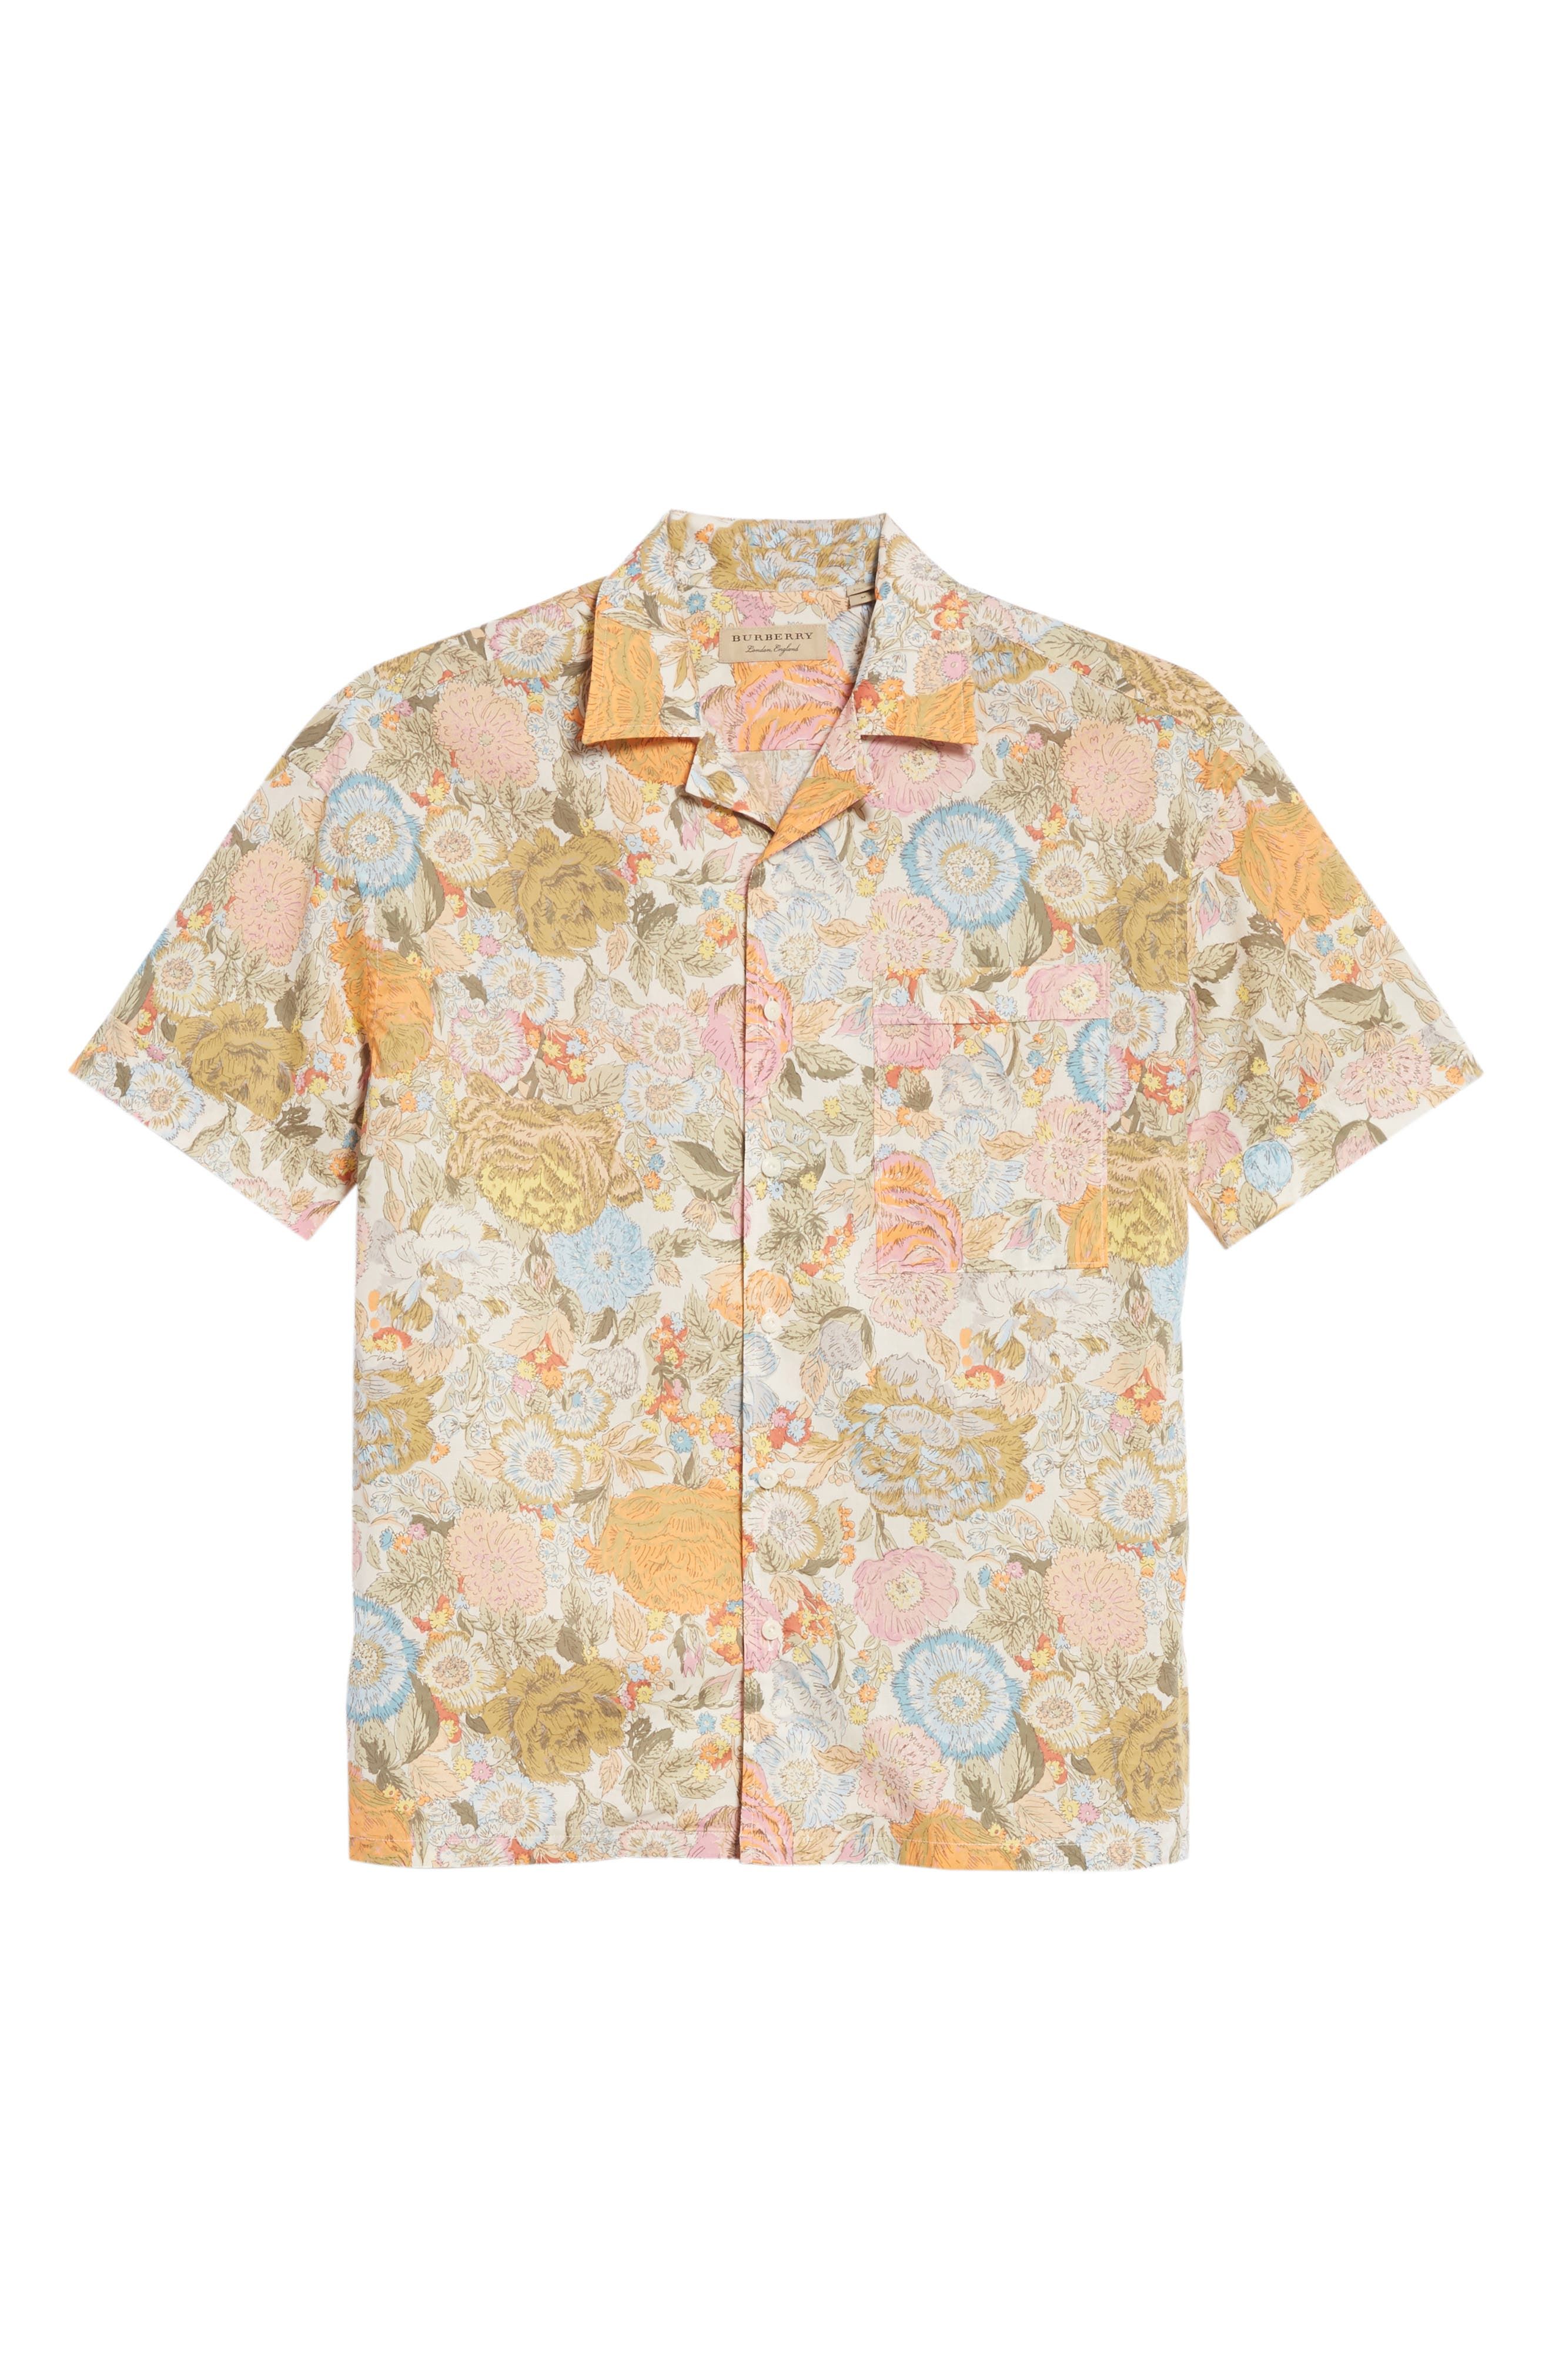 Harley Floral Print Shirt,                             Alternate thumbnail 6, color,                             Bright Orange